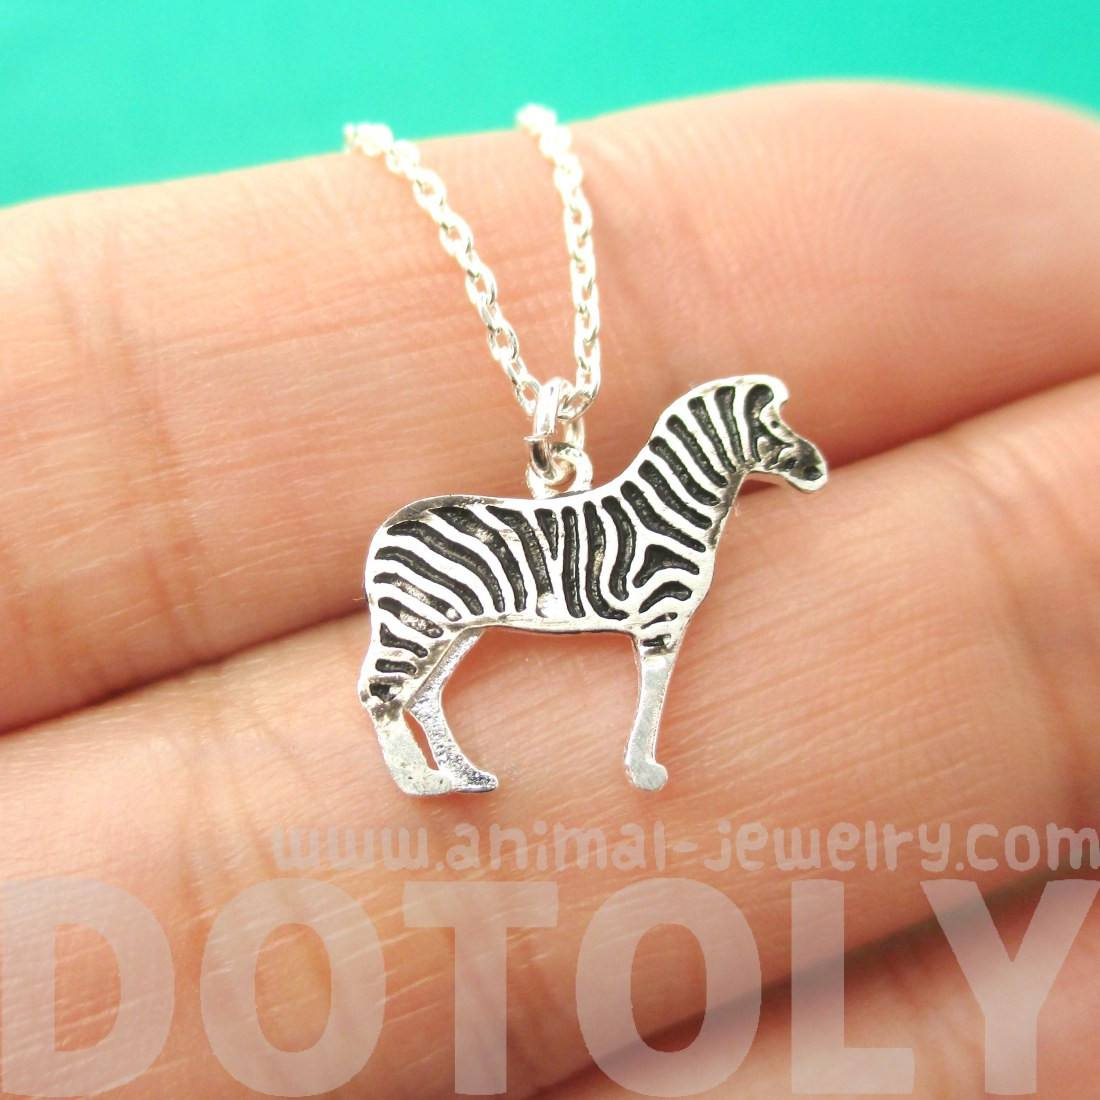 Zebra Shaped Charm Necklace in Silver | Animal Jewelry